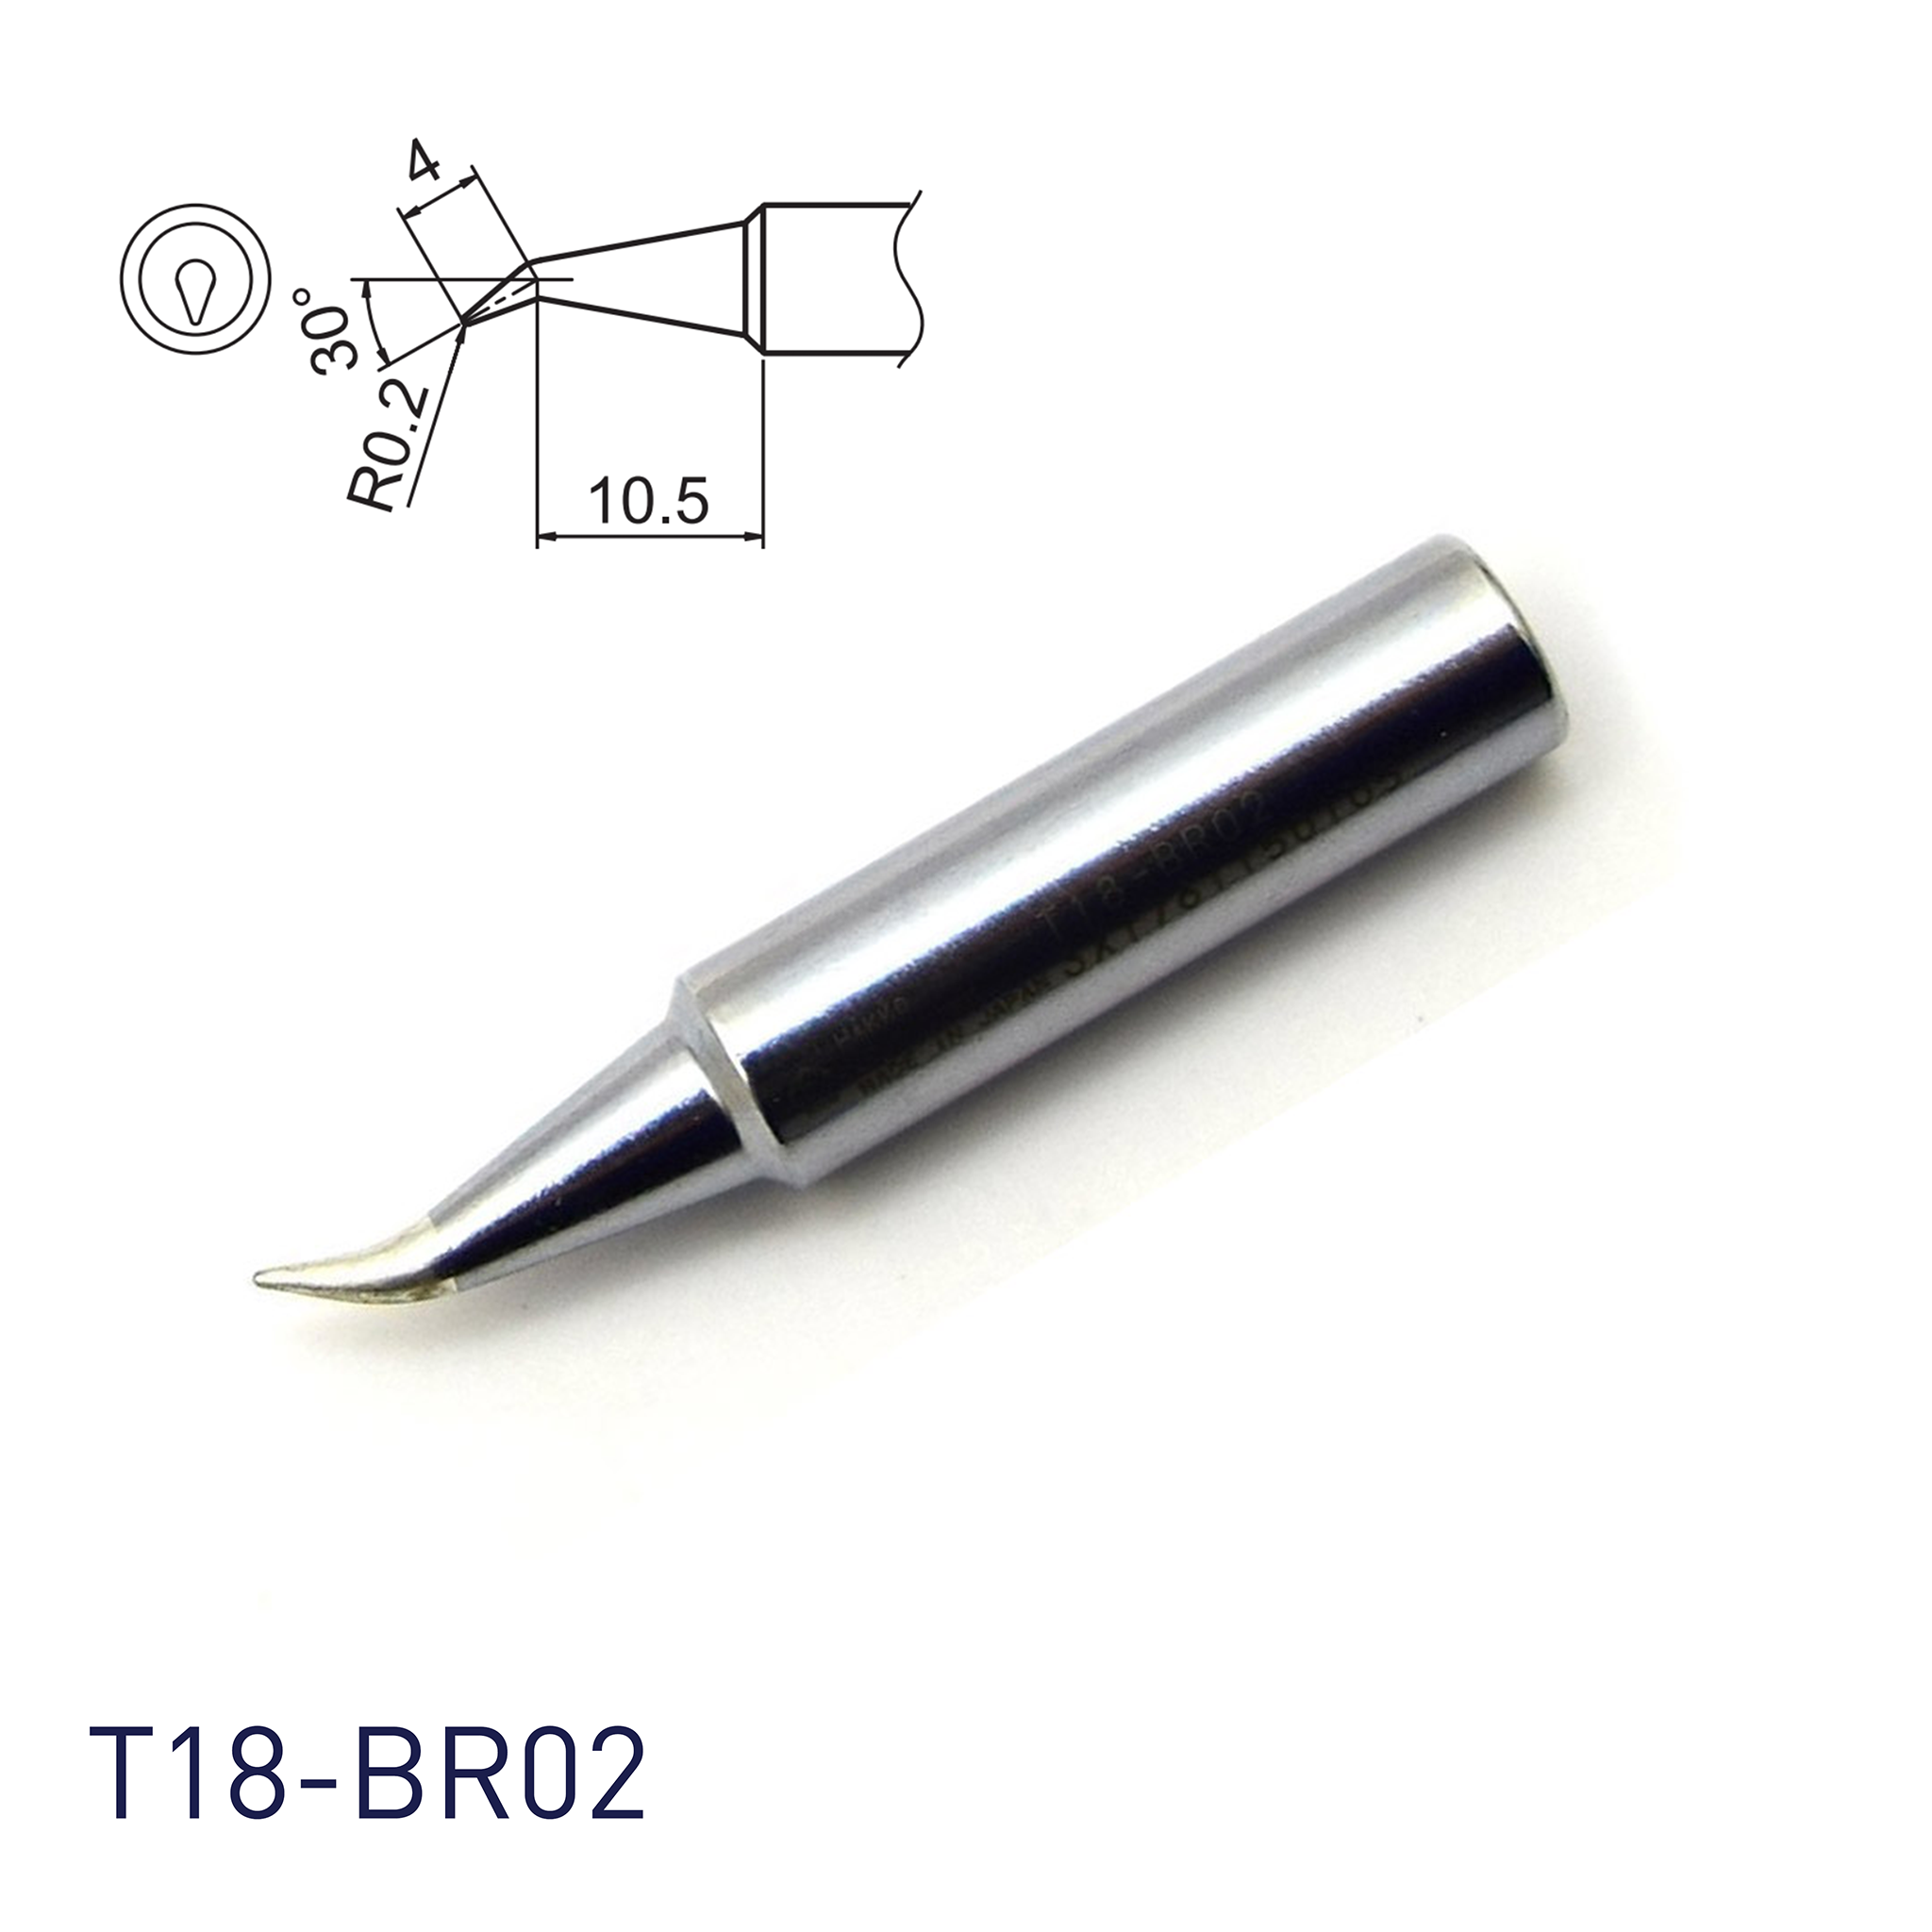 T18-BR02 - Hakko Products Pte Ltd